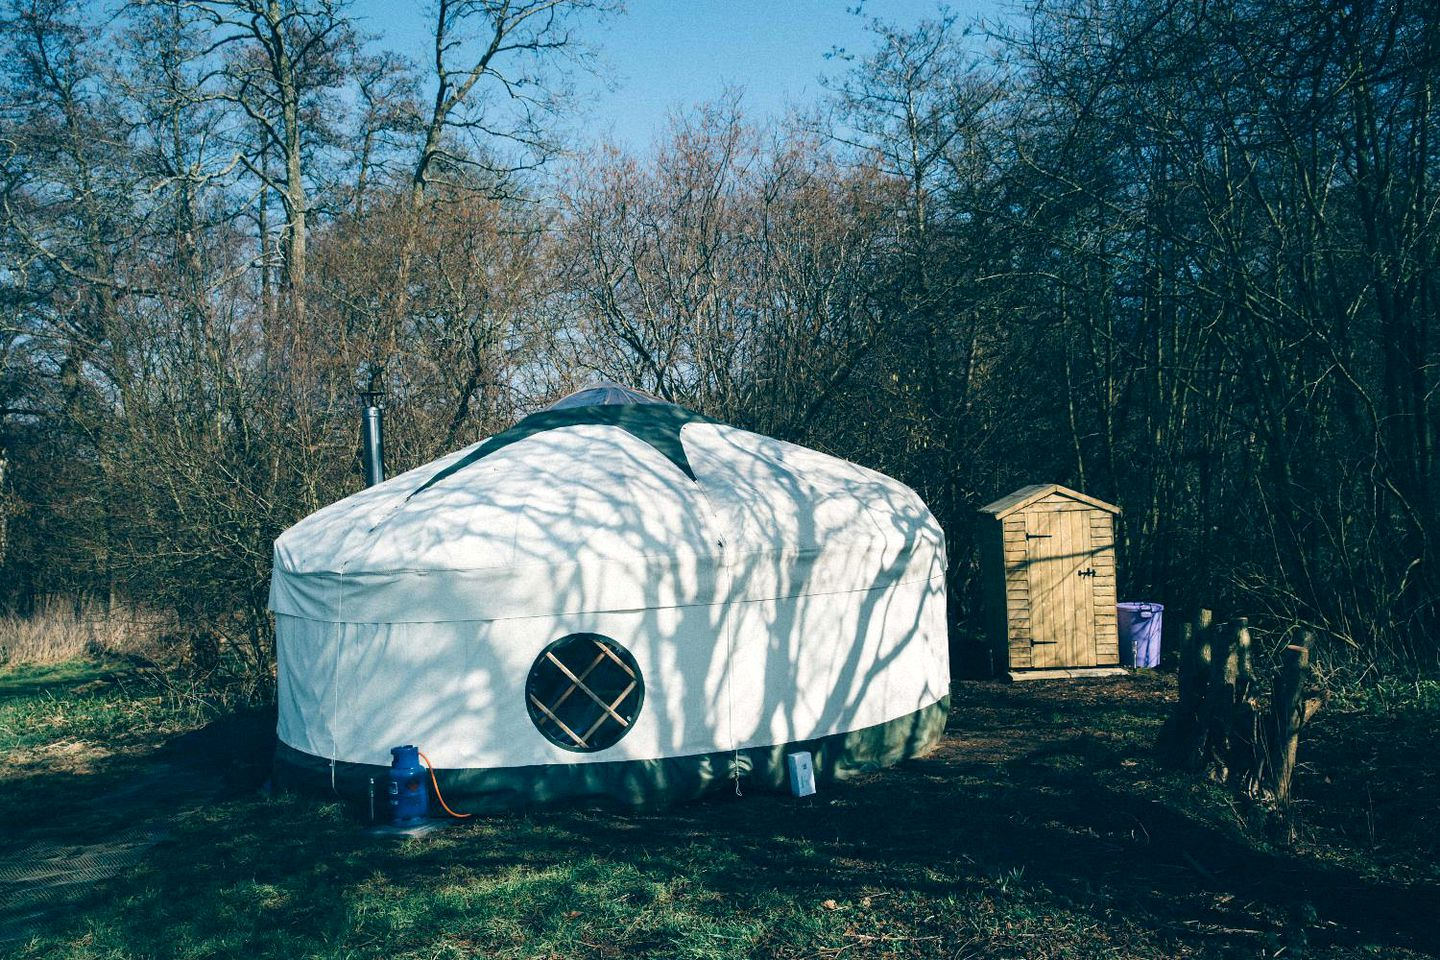 Book this yurt - Norfolk is a perfect place to spend the weekend away